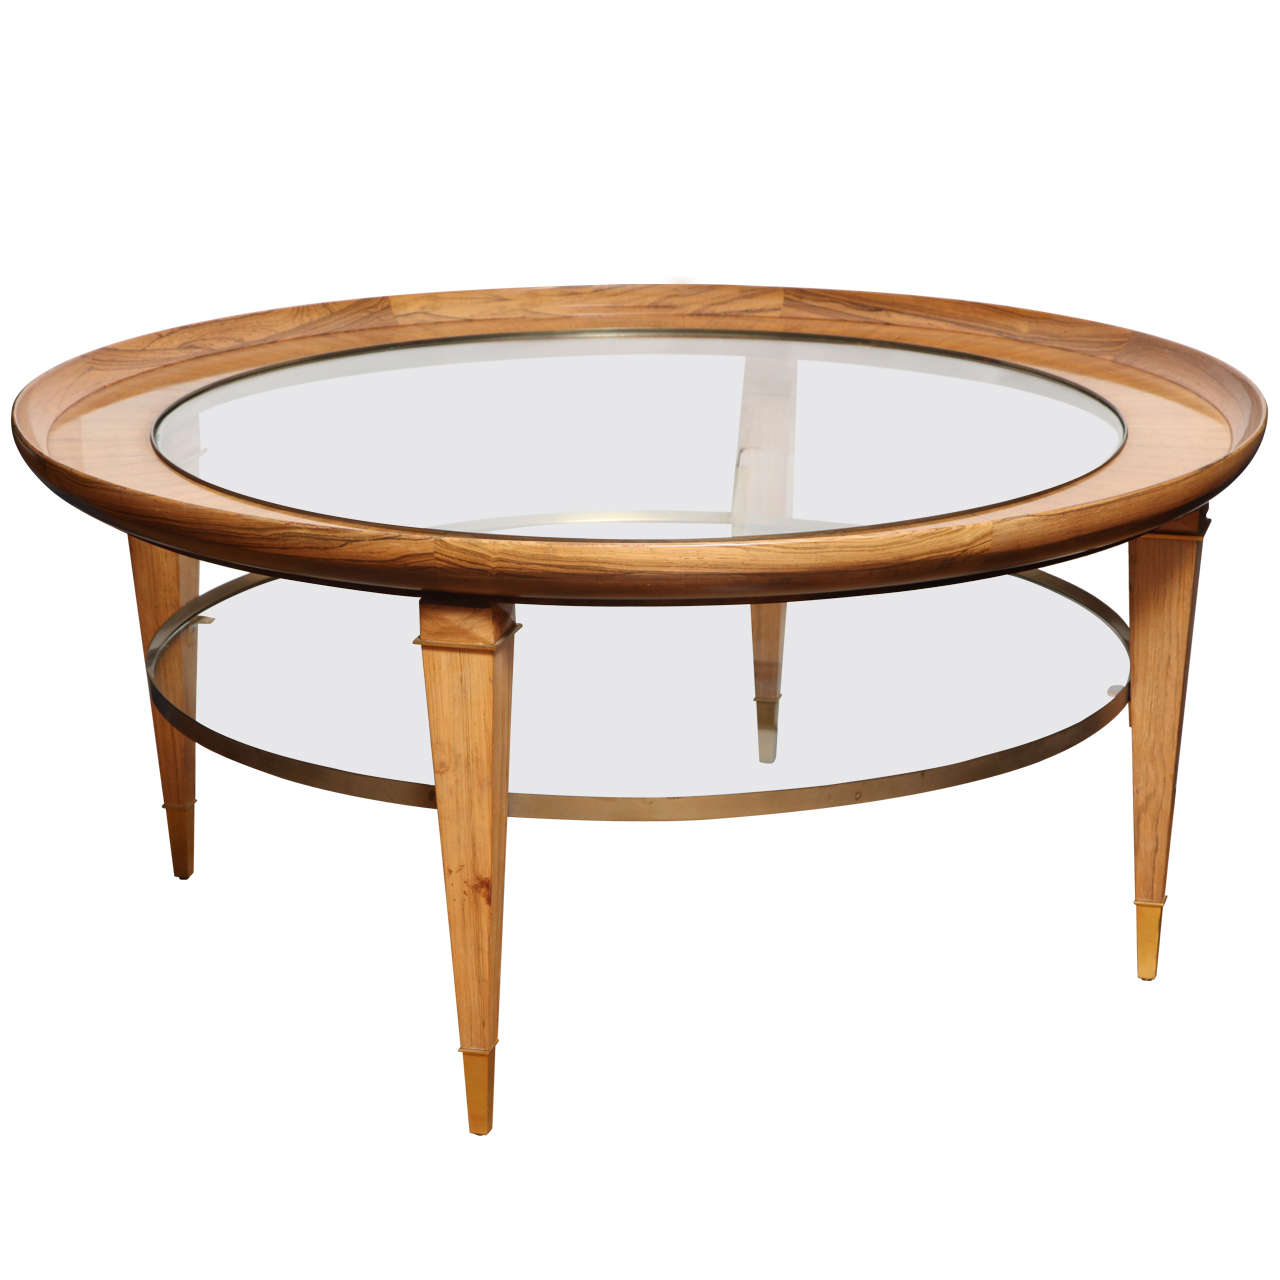 a round two tiered rosewood coffee table with glass top at With two tier round coffee table